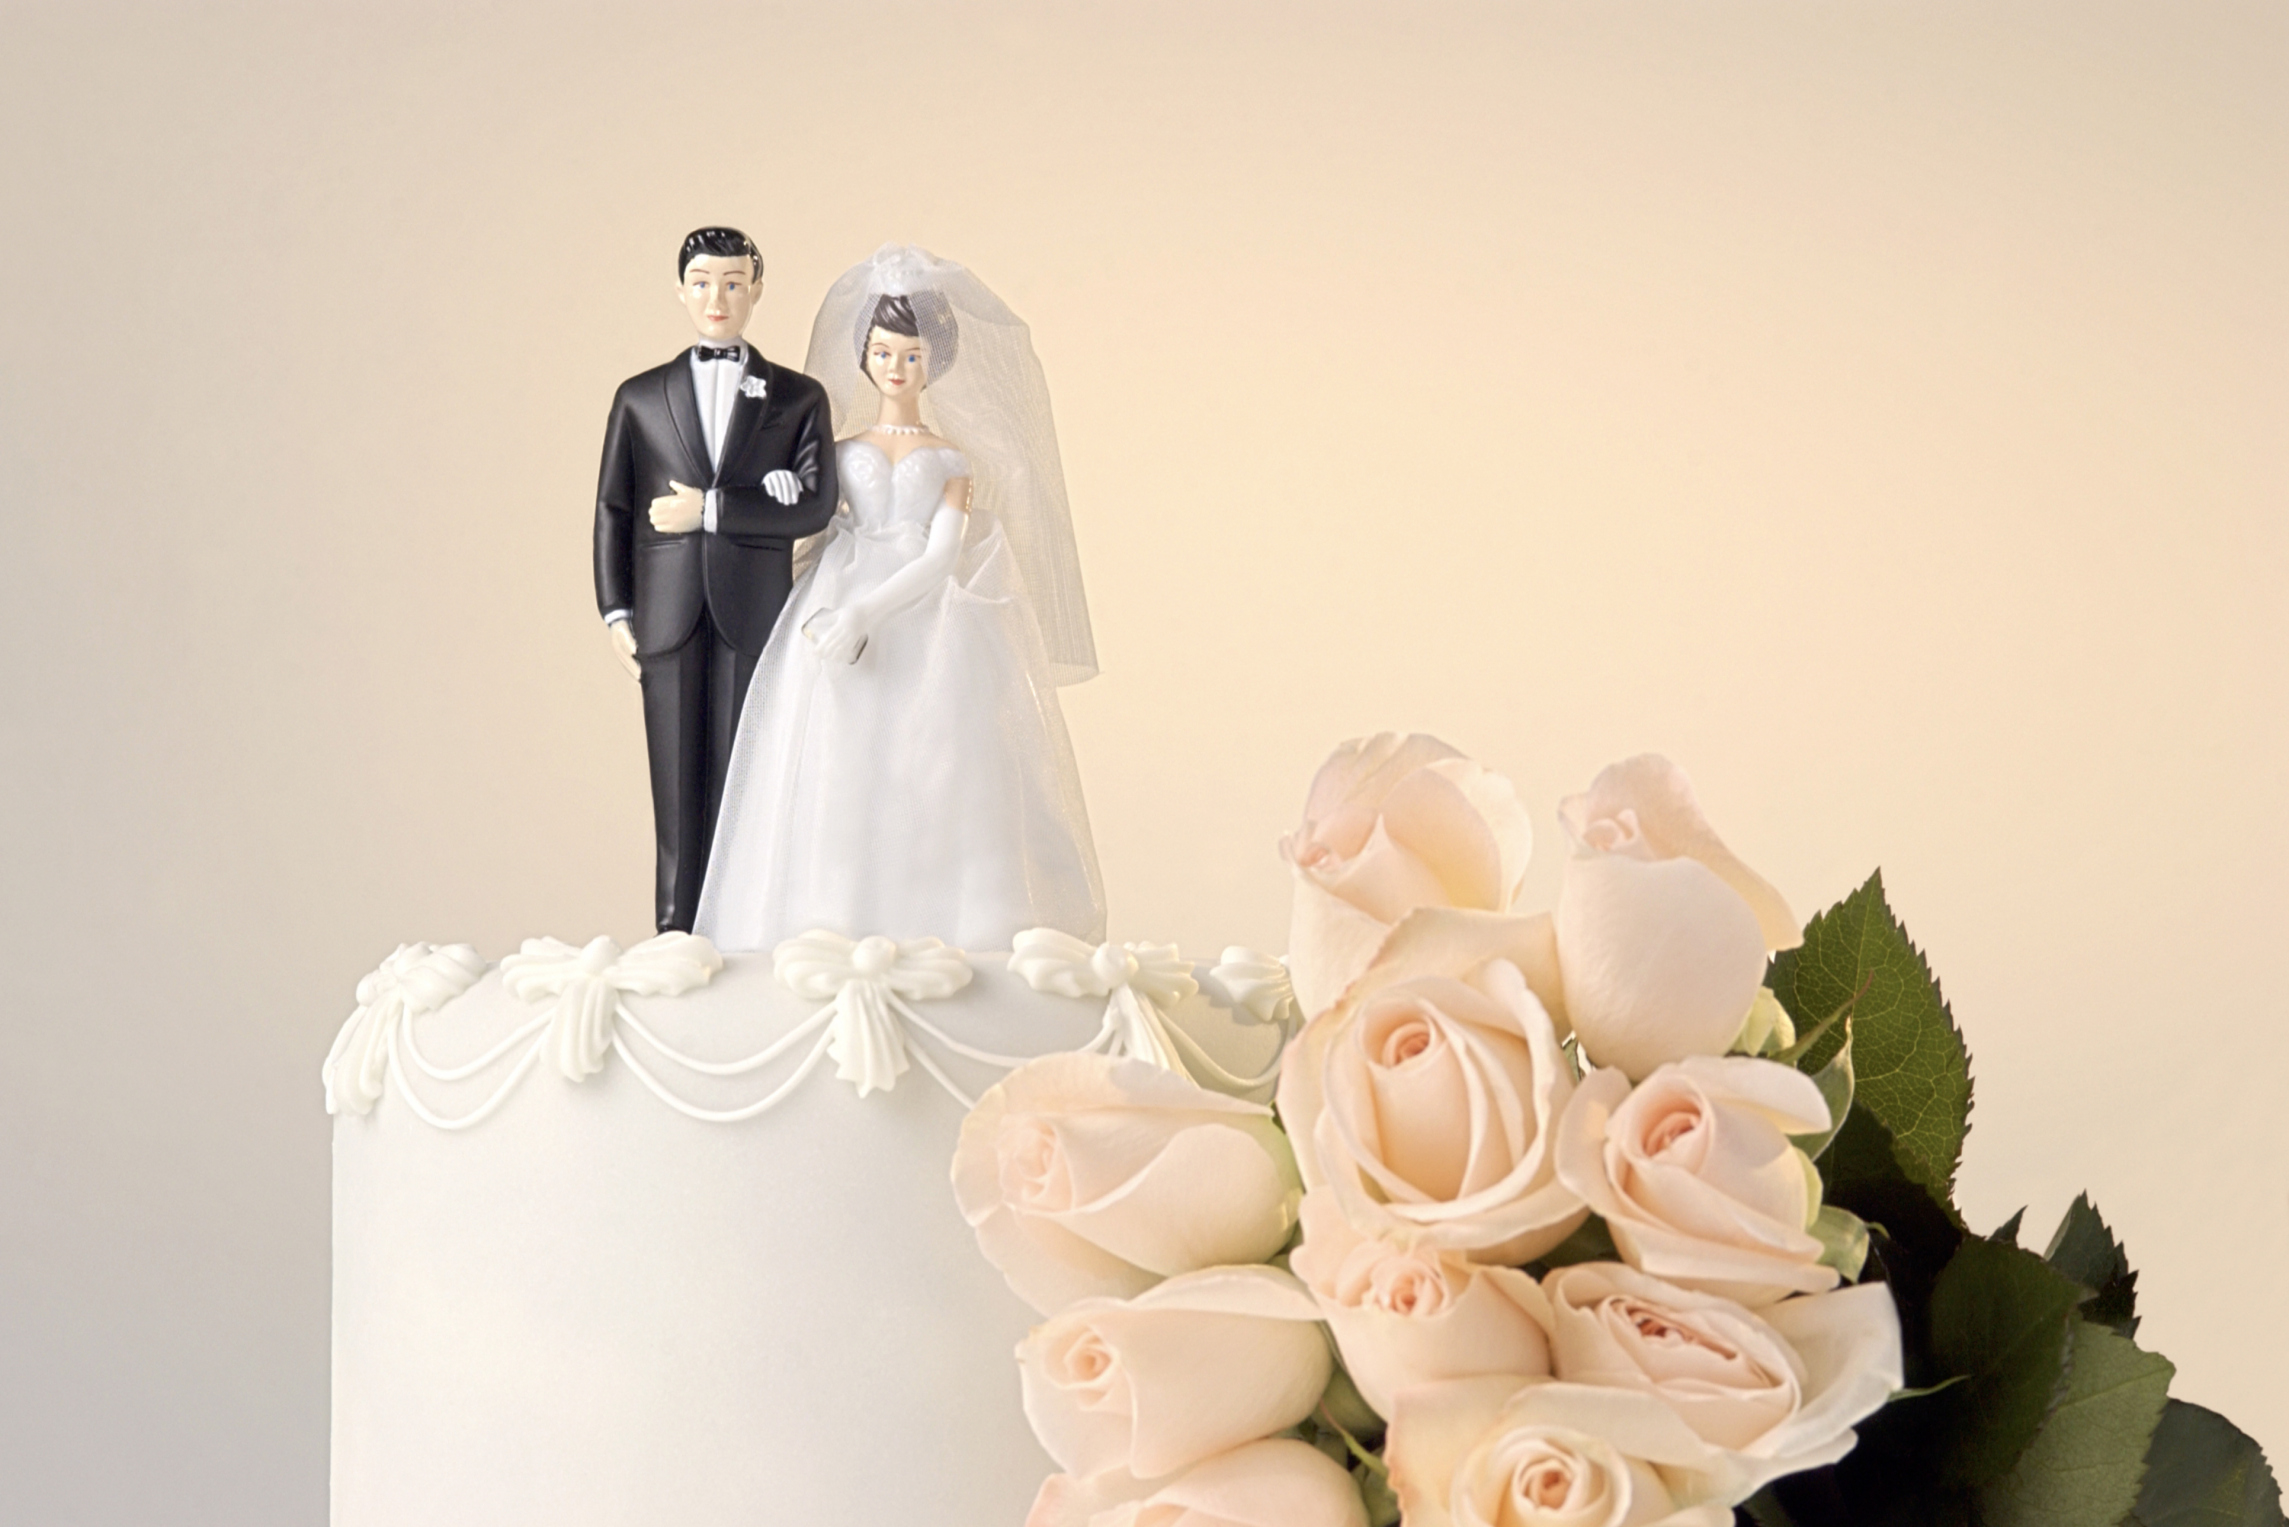 What Are The Duties Of A Wedding Coordinator?